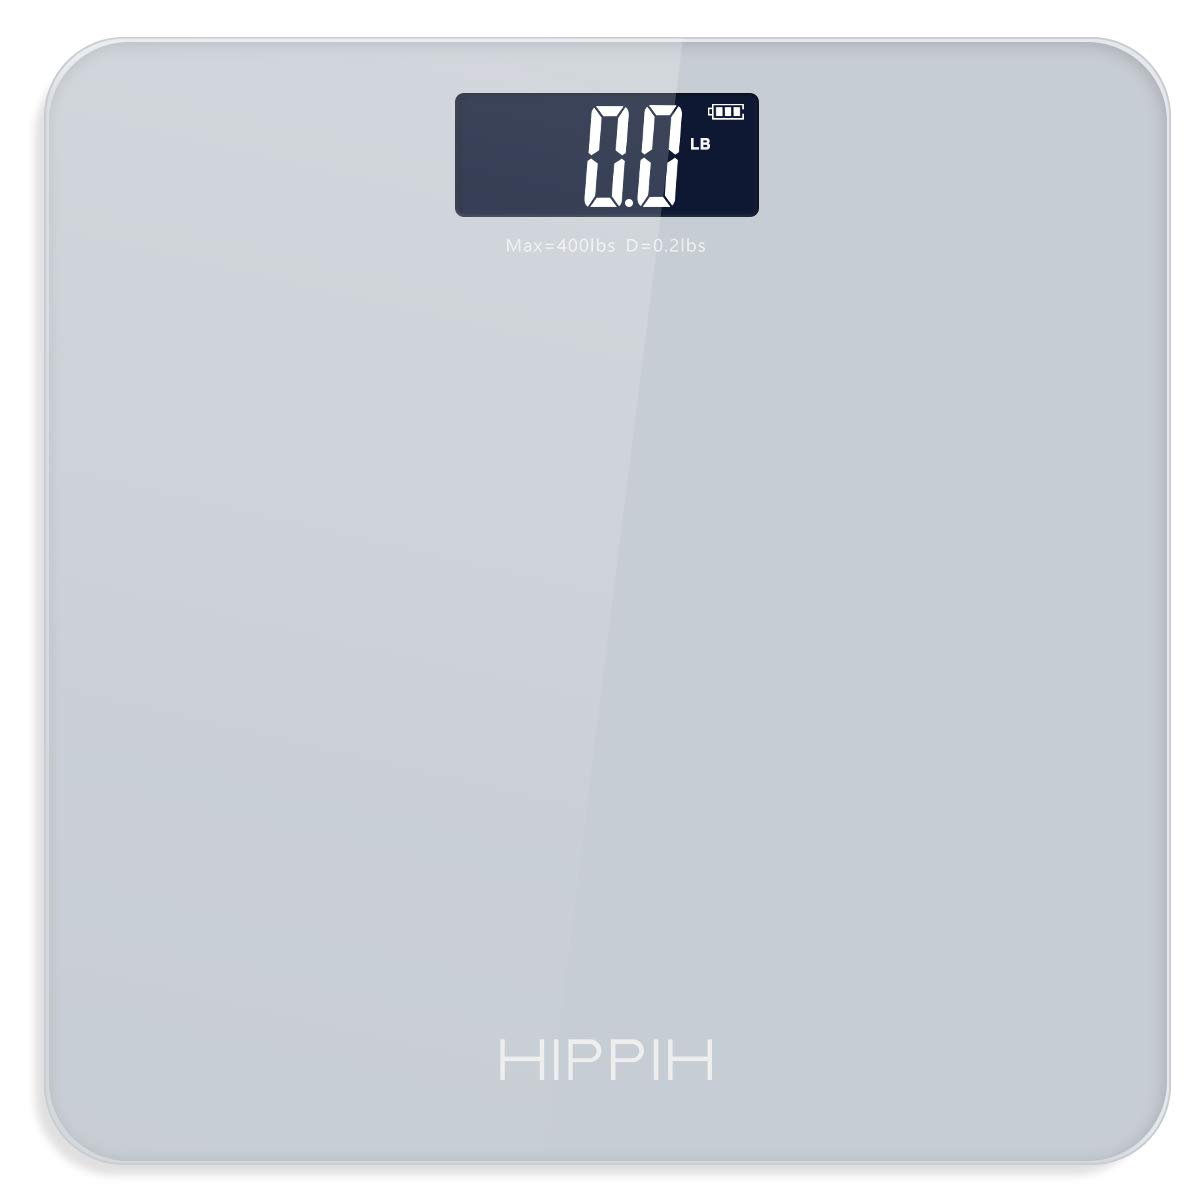 Digital Body Weight Scale, HIPPIH High Accuracy Battery-Powered Bathroom Scale with Step-On Technology, Large Blacklit Display, High Precision Measurements, 400 Pounds, Grey